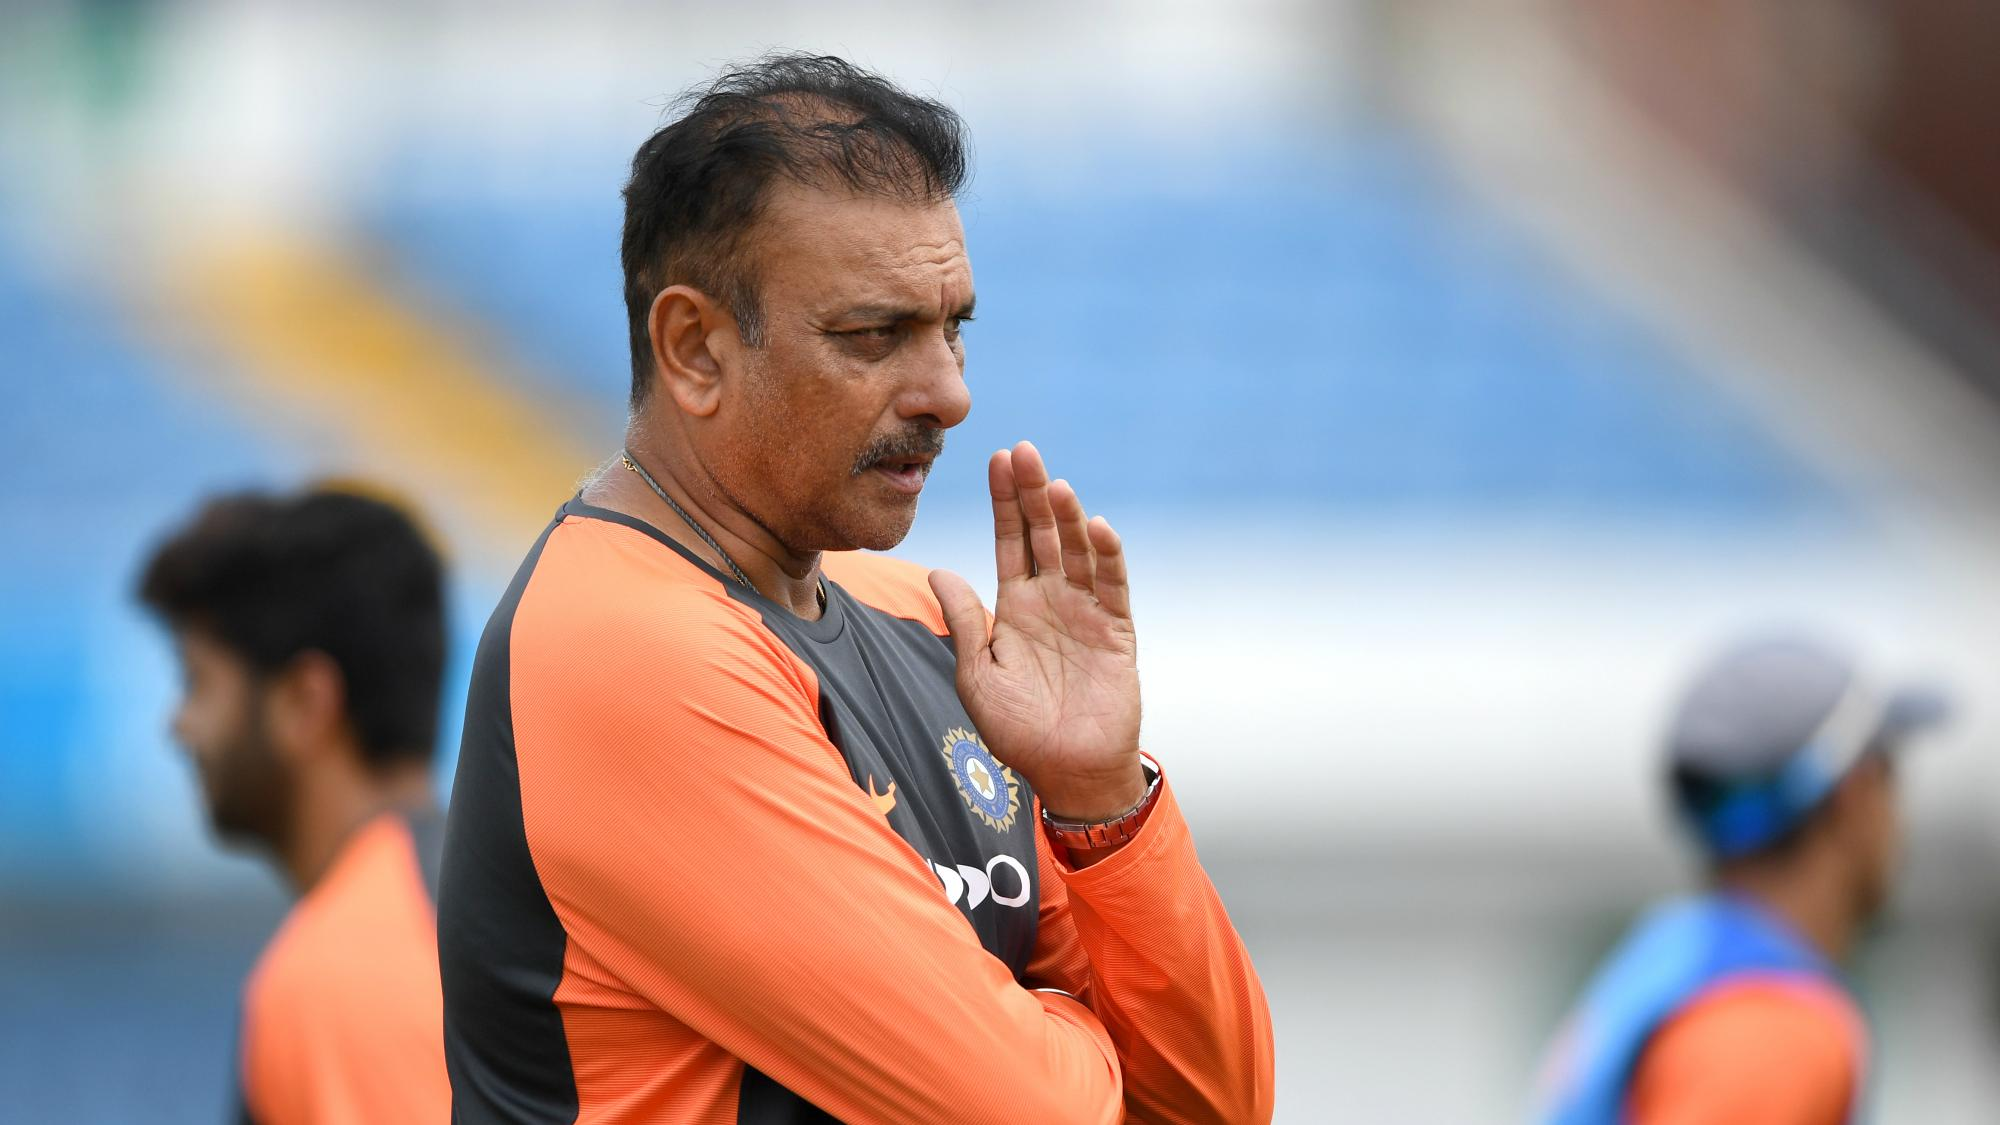 'Don't lose heart' – Shastri's message to Rayudu, Pant